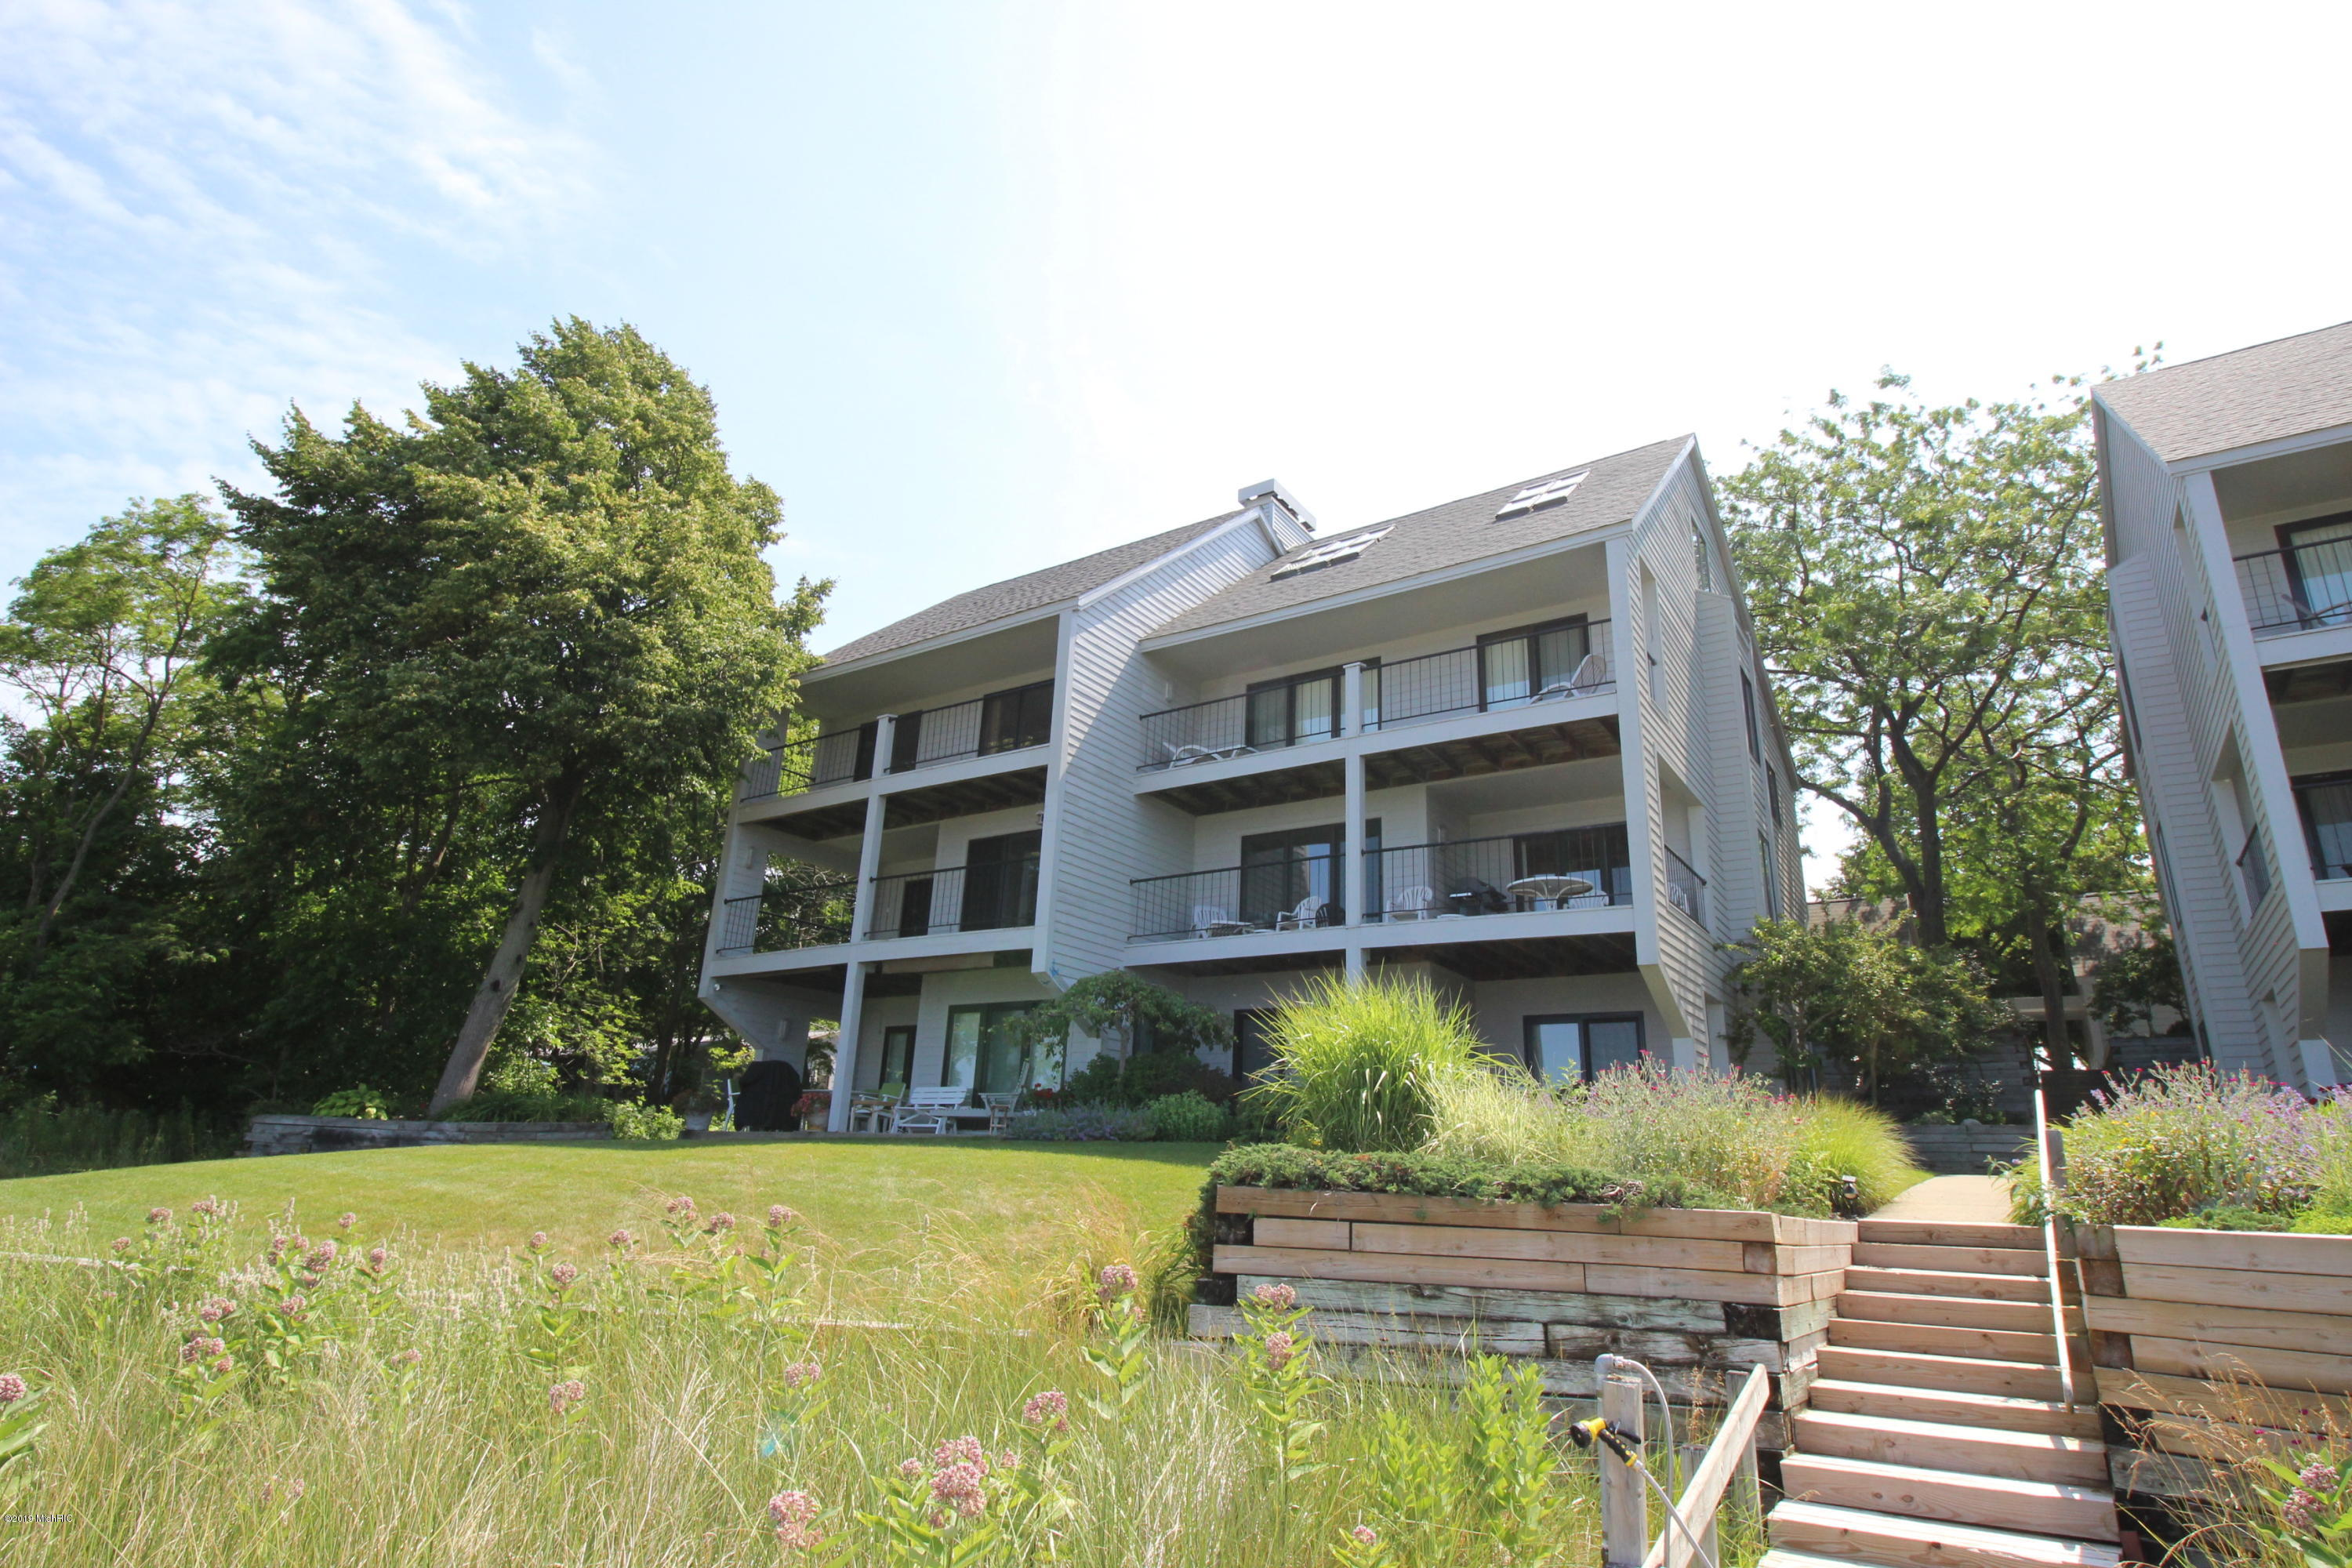 Lakefront Condos For Sale– Lake Homes by Michigan Lifestyle